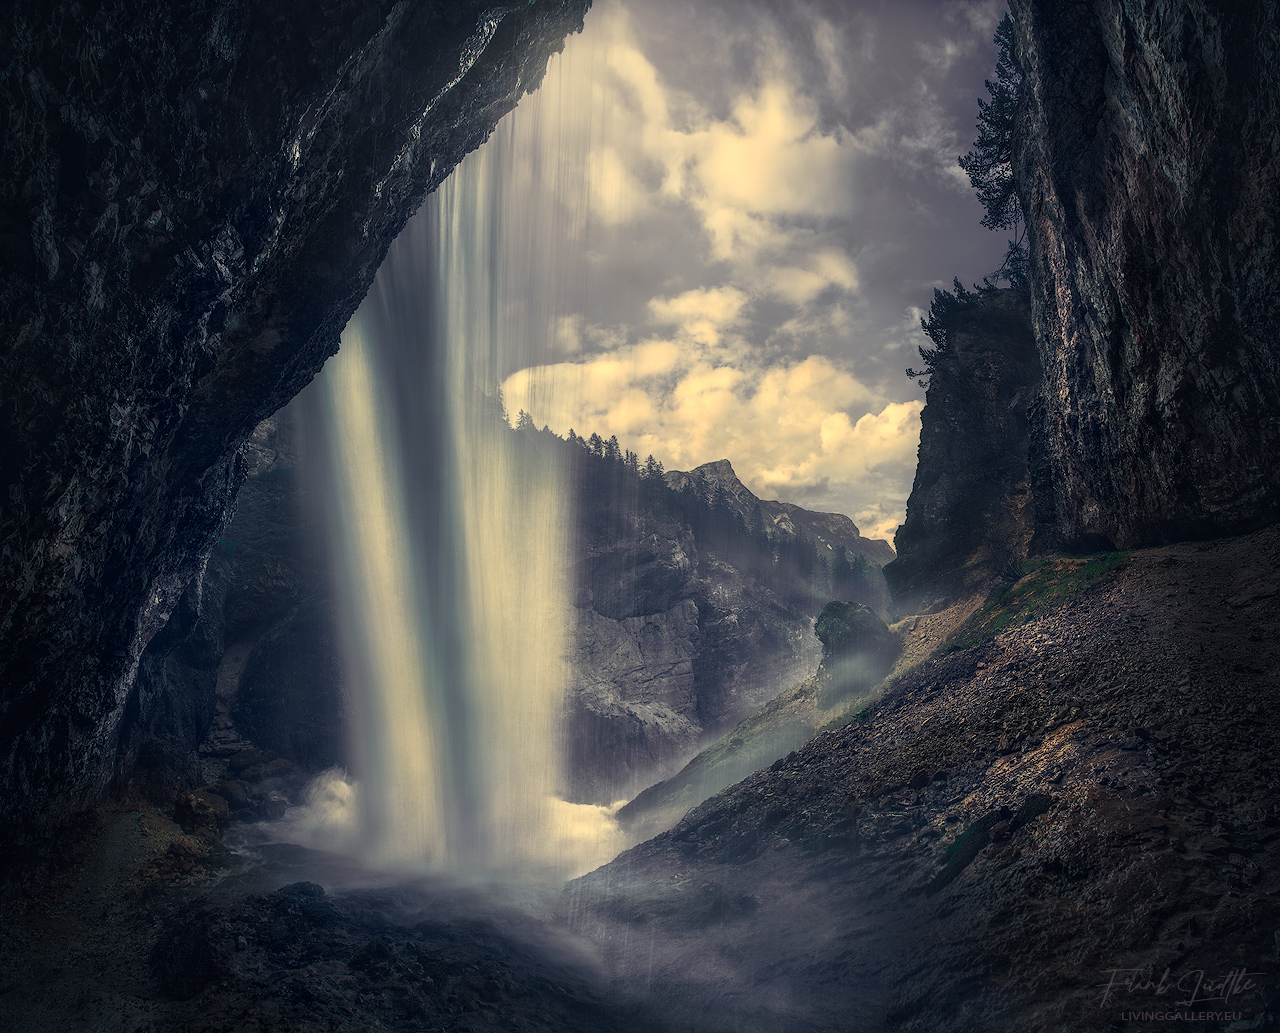 The hidden waterfall